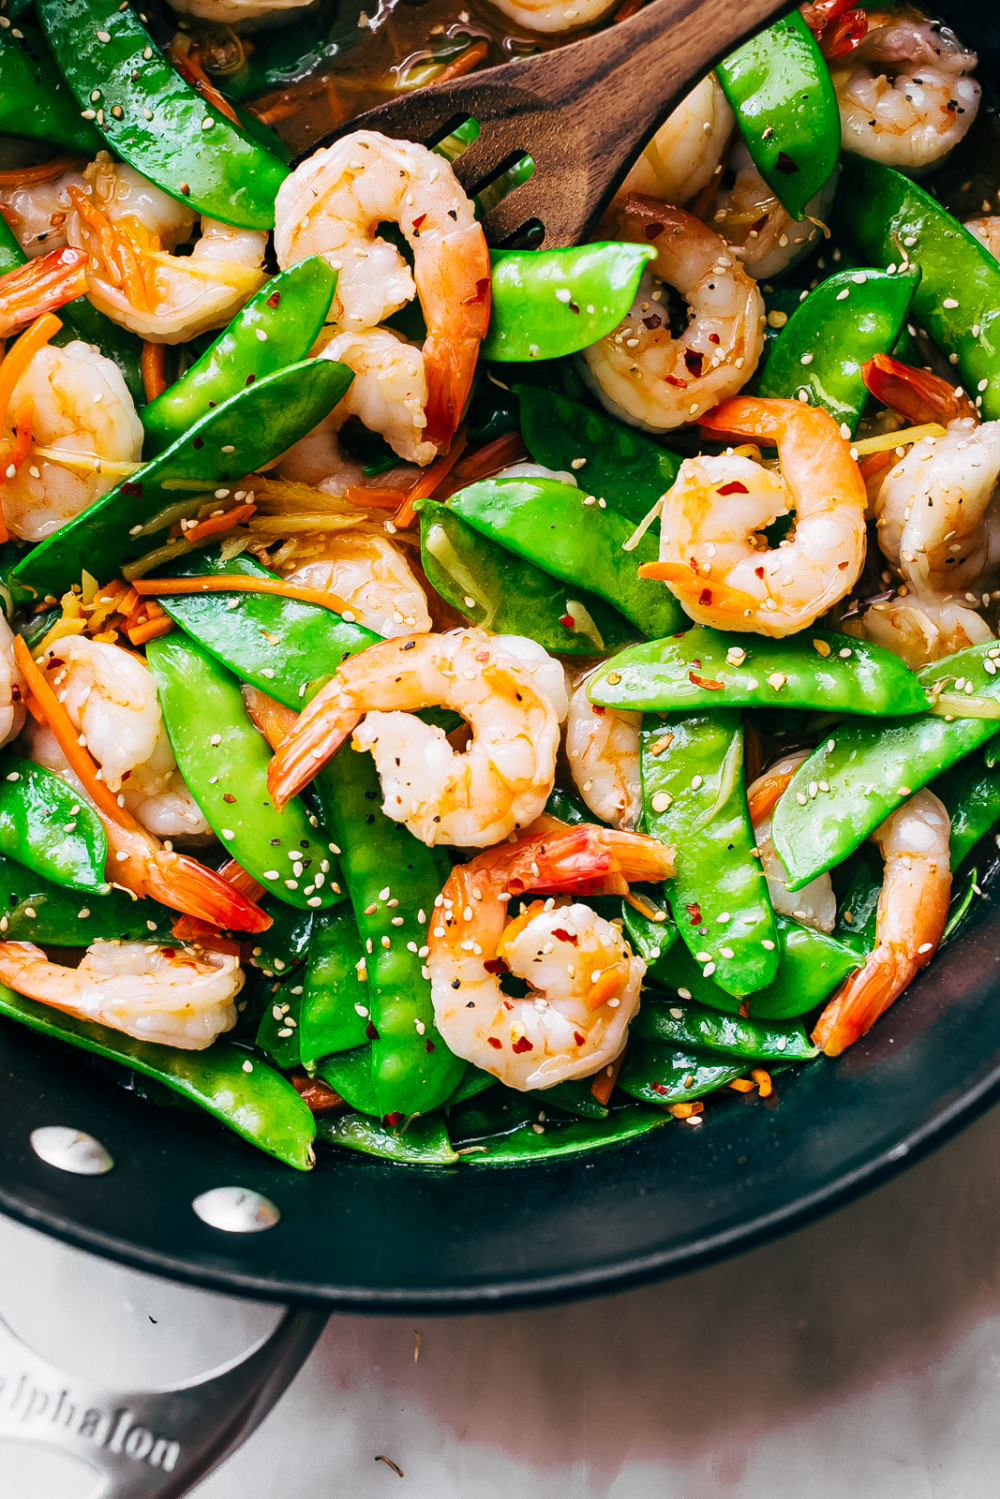 10-Minute Ginger Shrimp Snow Pea Stir Fry Recipe - Little Spice Jar